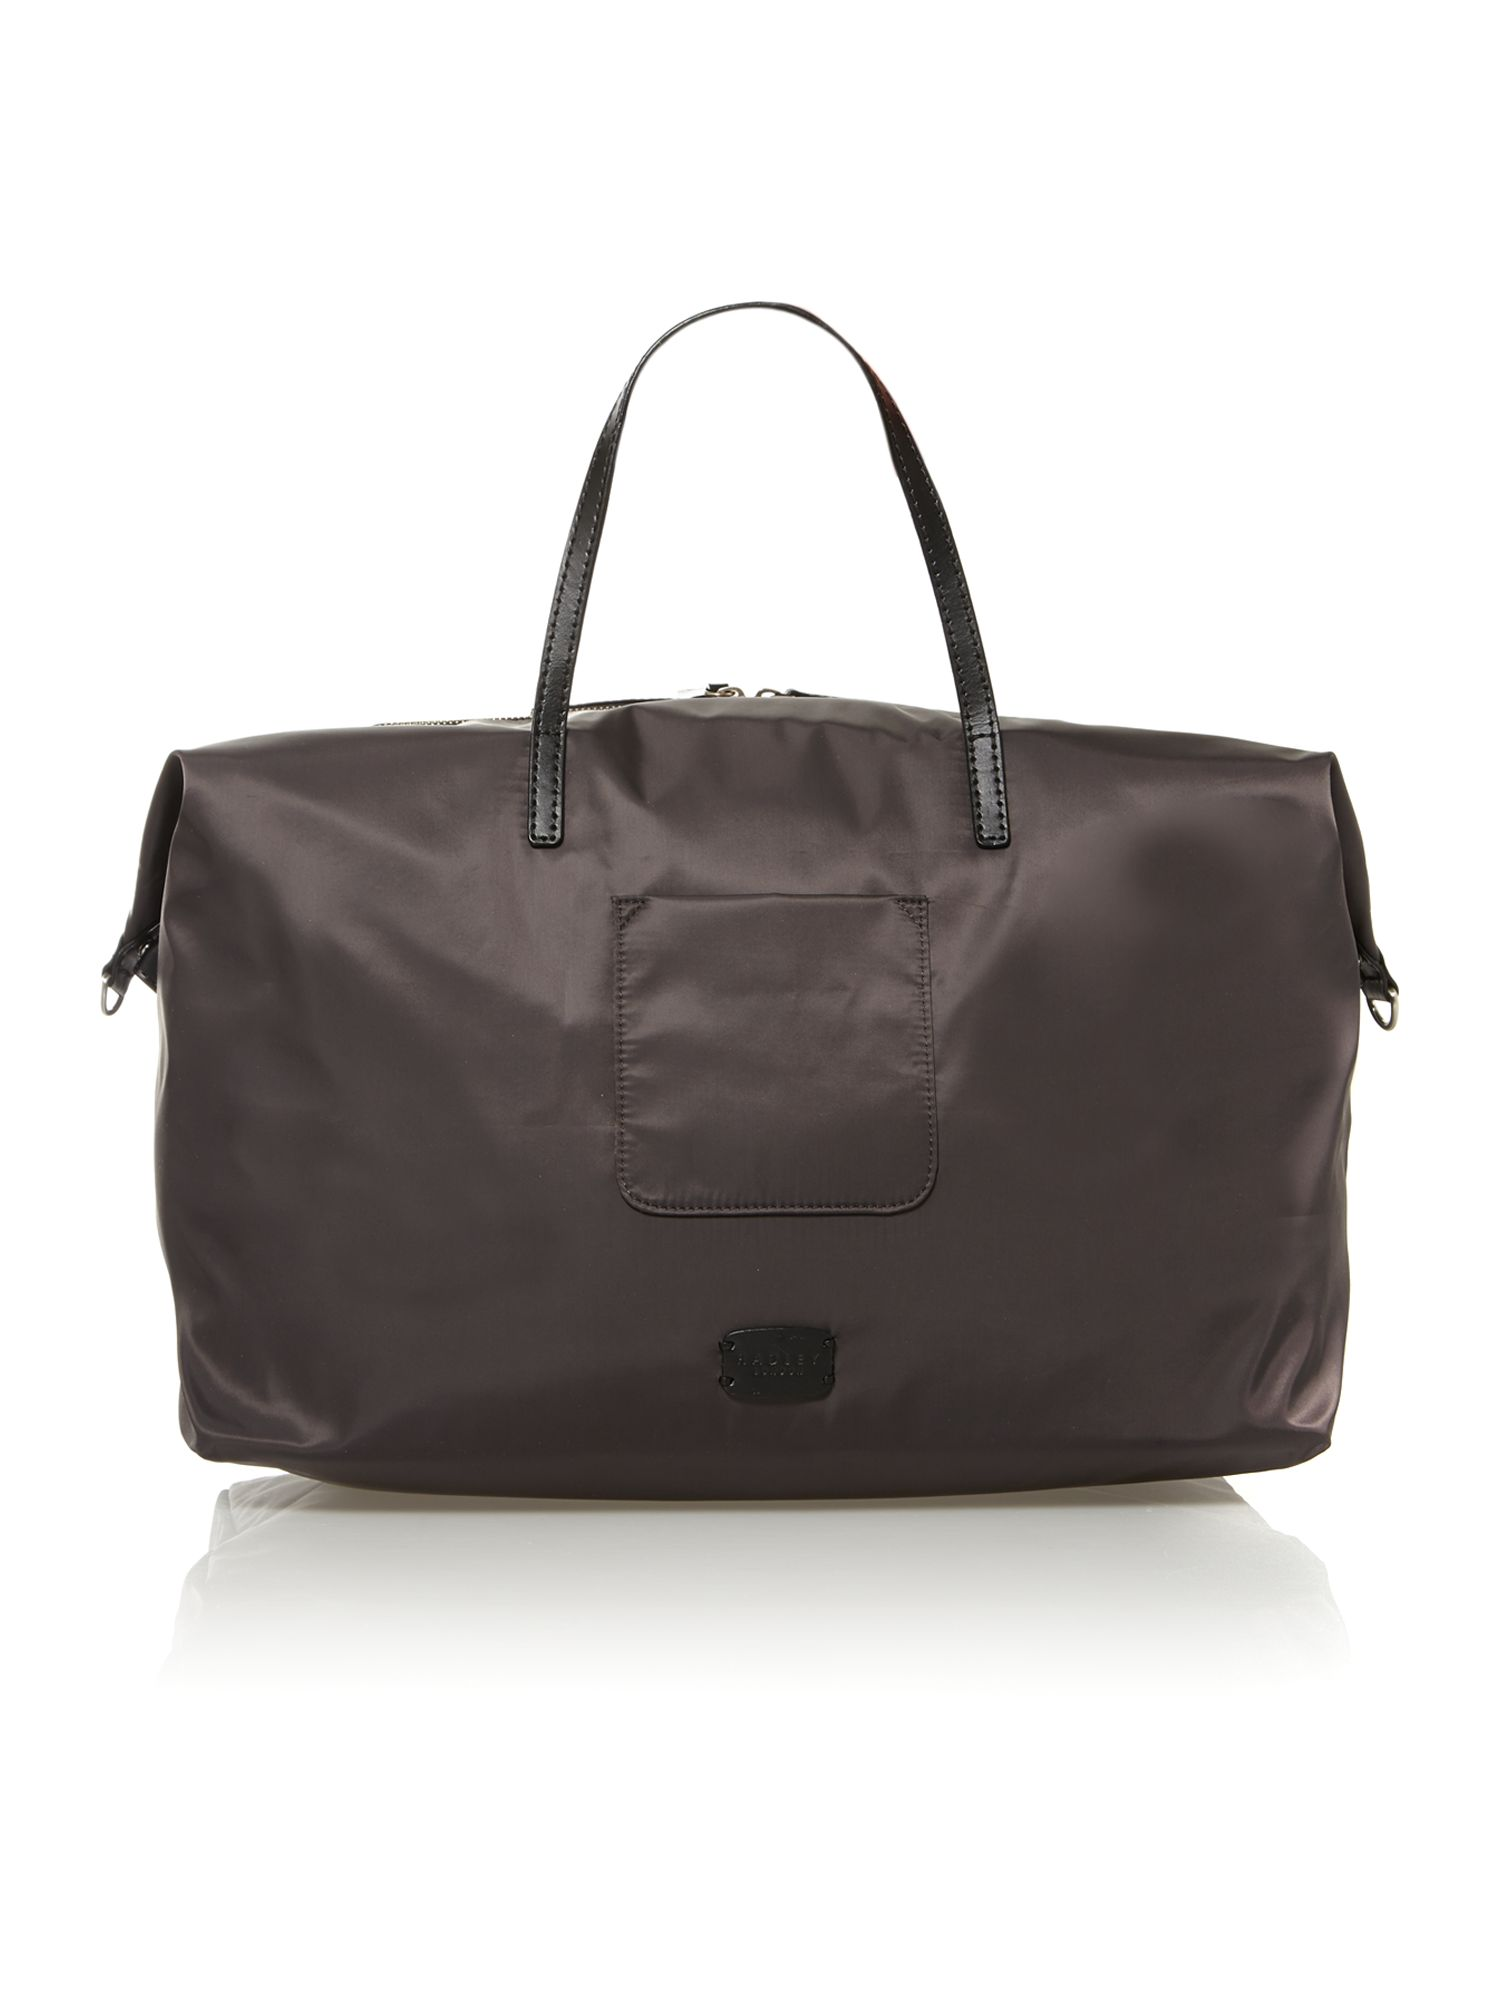 Grey large holdall multi strap bag